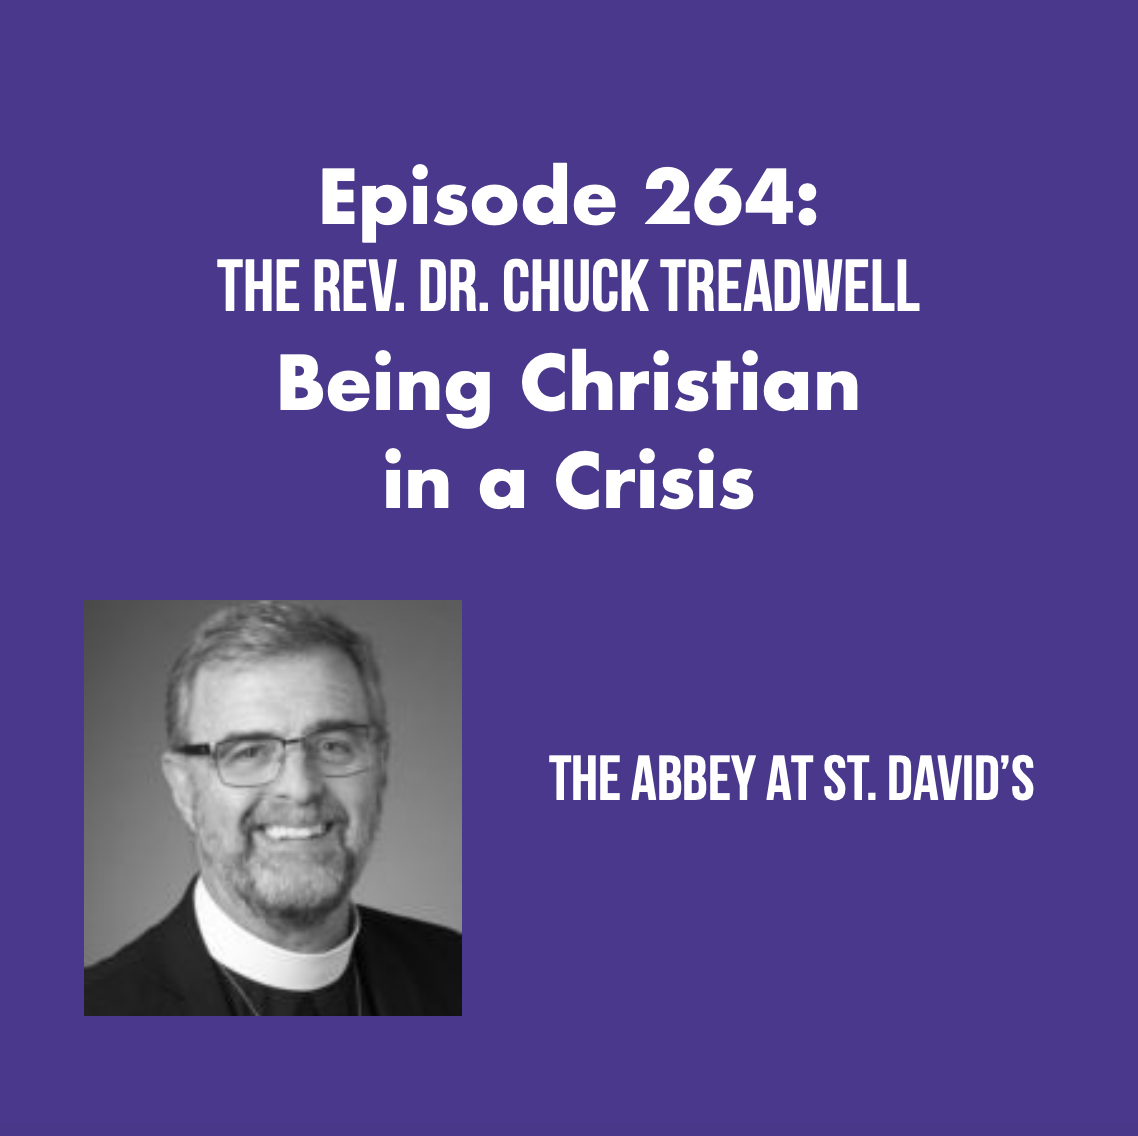 Episode 264: Being Christian in a Crisis with The Rev. Dr. Chuck Treadwell